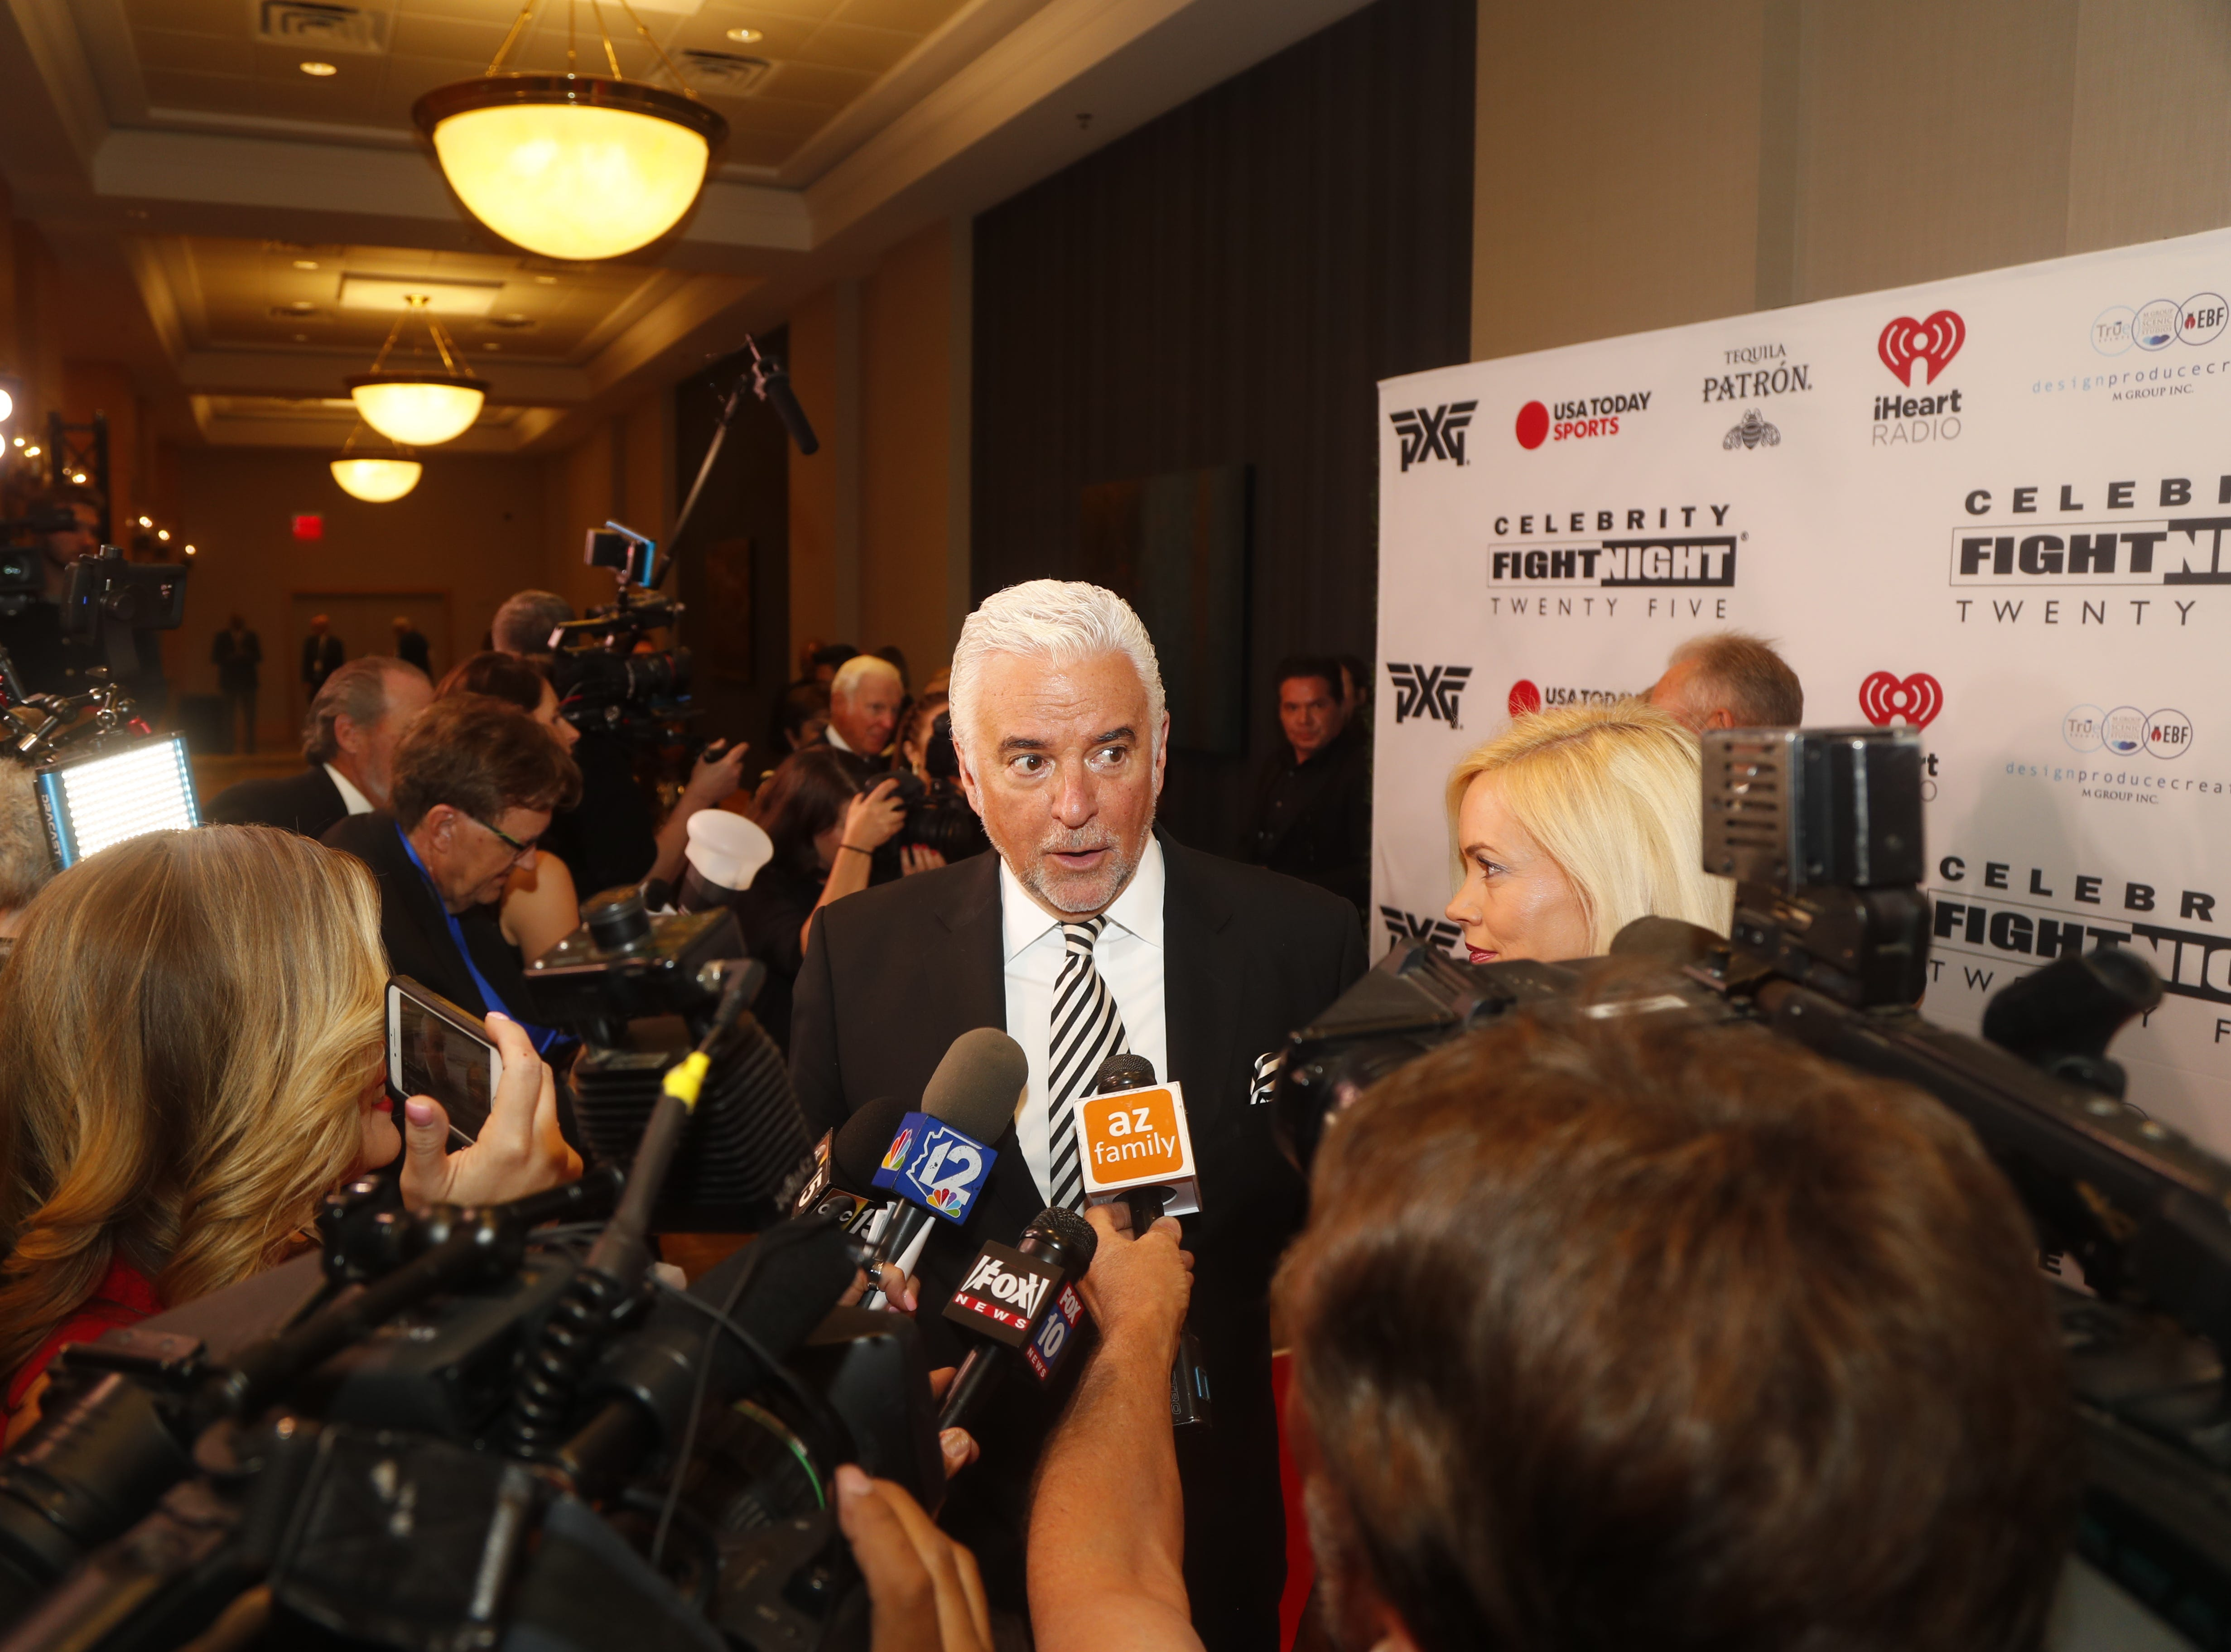 John O'Hurley speaks with the media during the Celebrity Fight Night red carpet in Scottsdale, Ariz., on March 23, 2019.